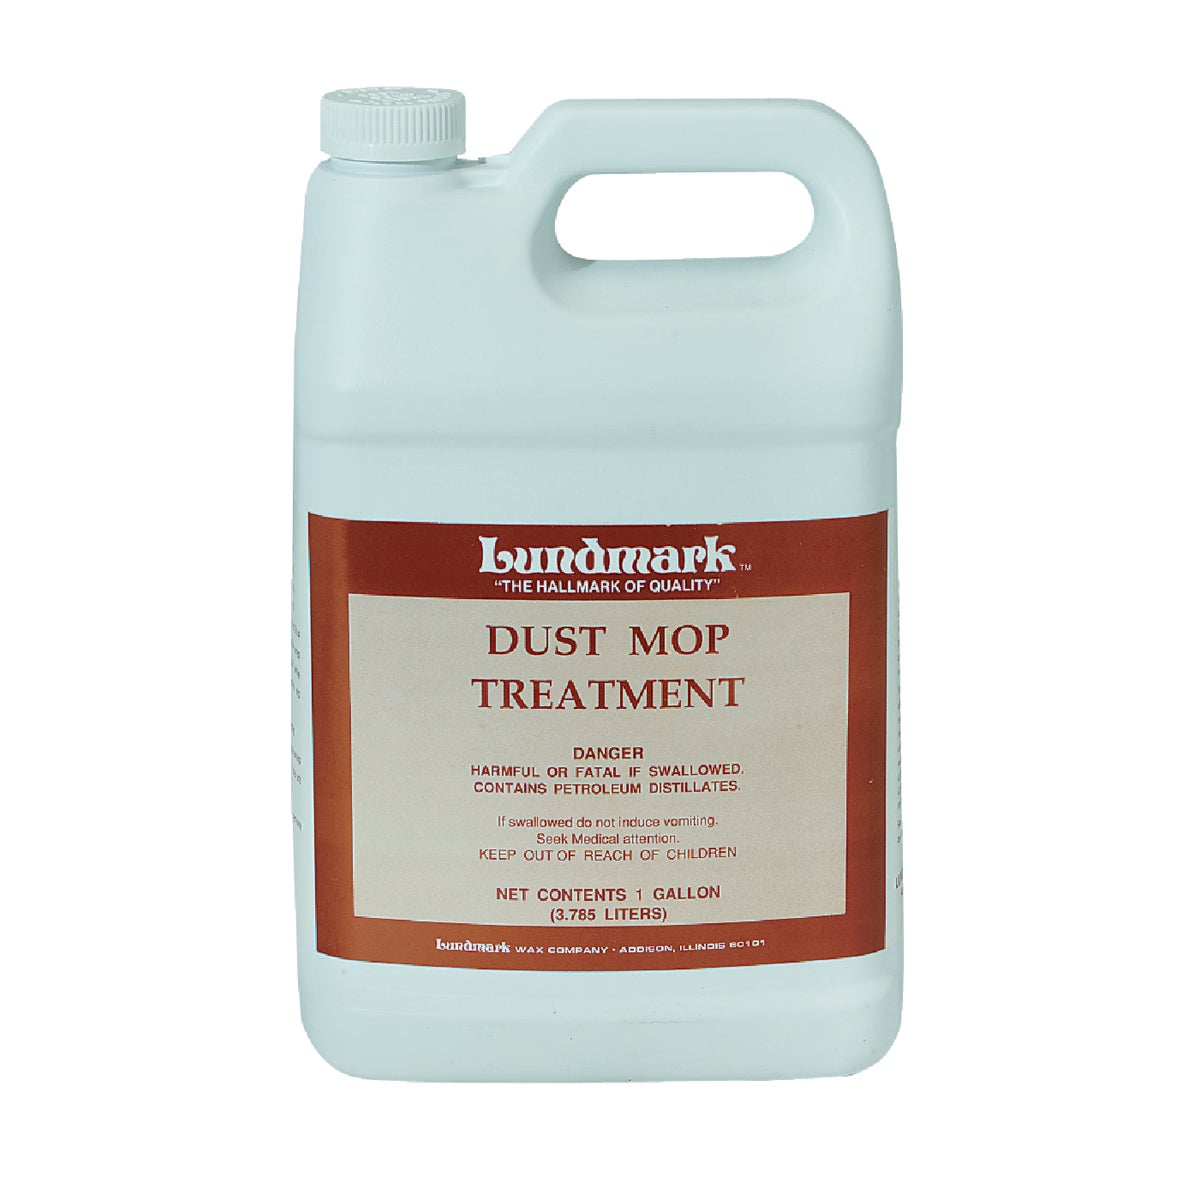 GALLON MOP TREATMENT - 3254G01-4 by Lundmark Wax Co